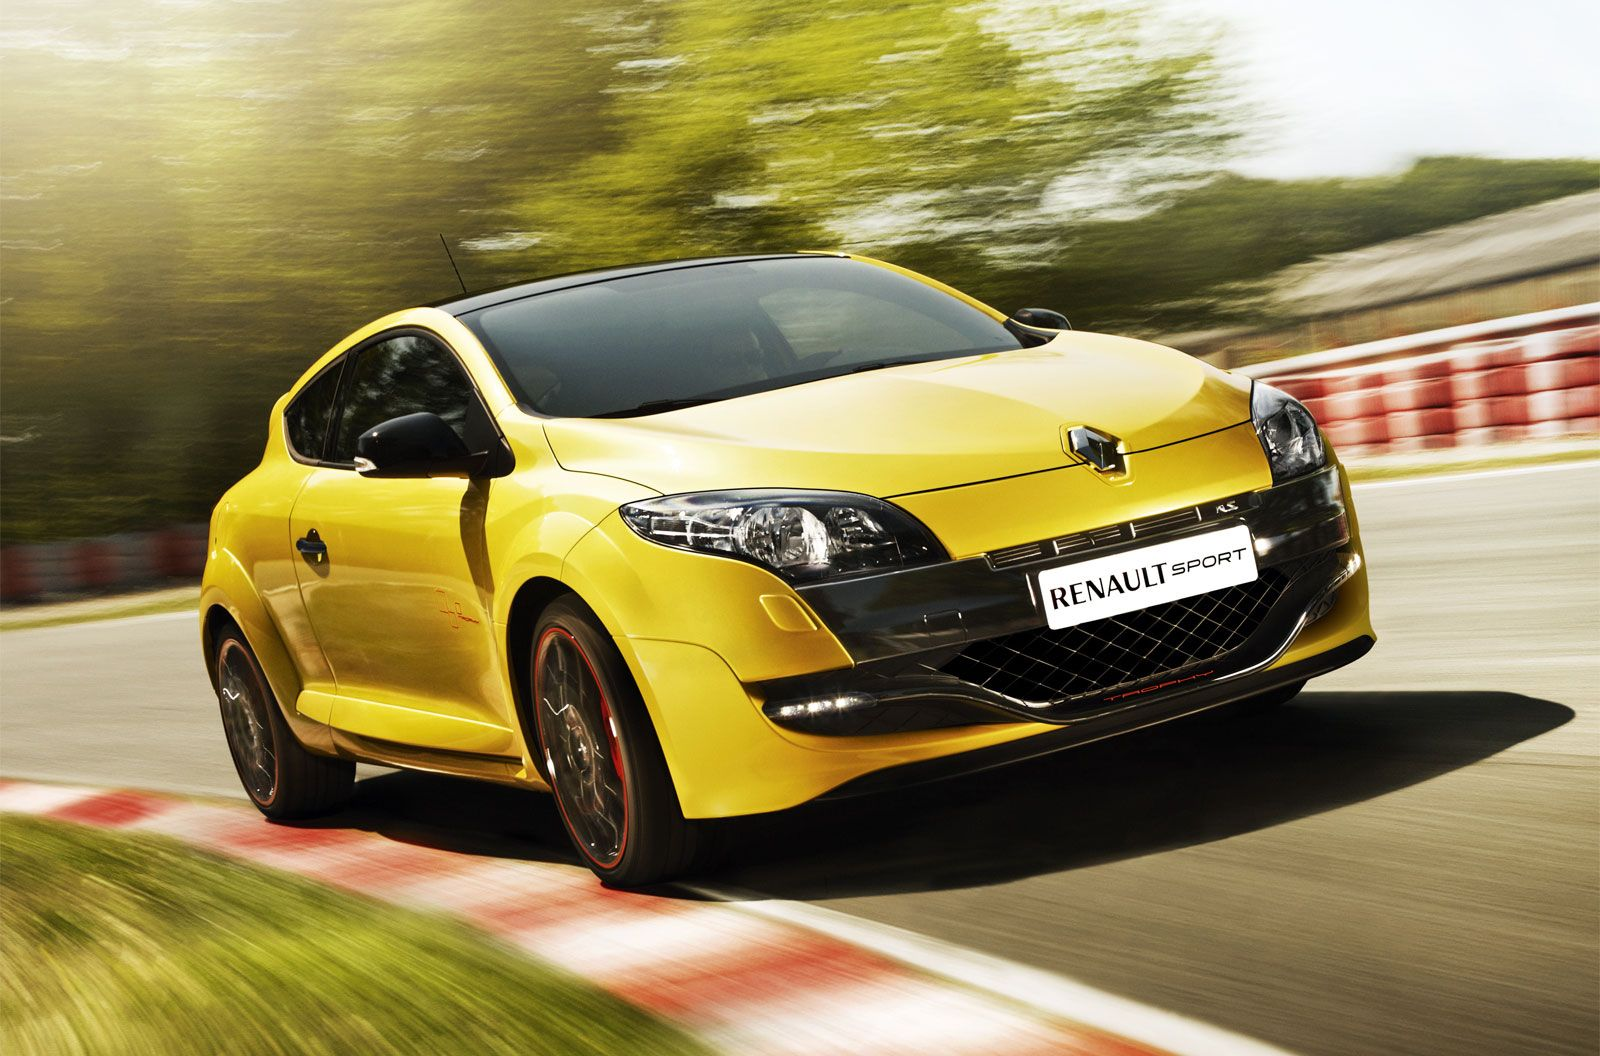 2012 Renault Megane Rs Trophy Hd Wallpaper Con Imagenes